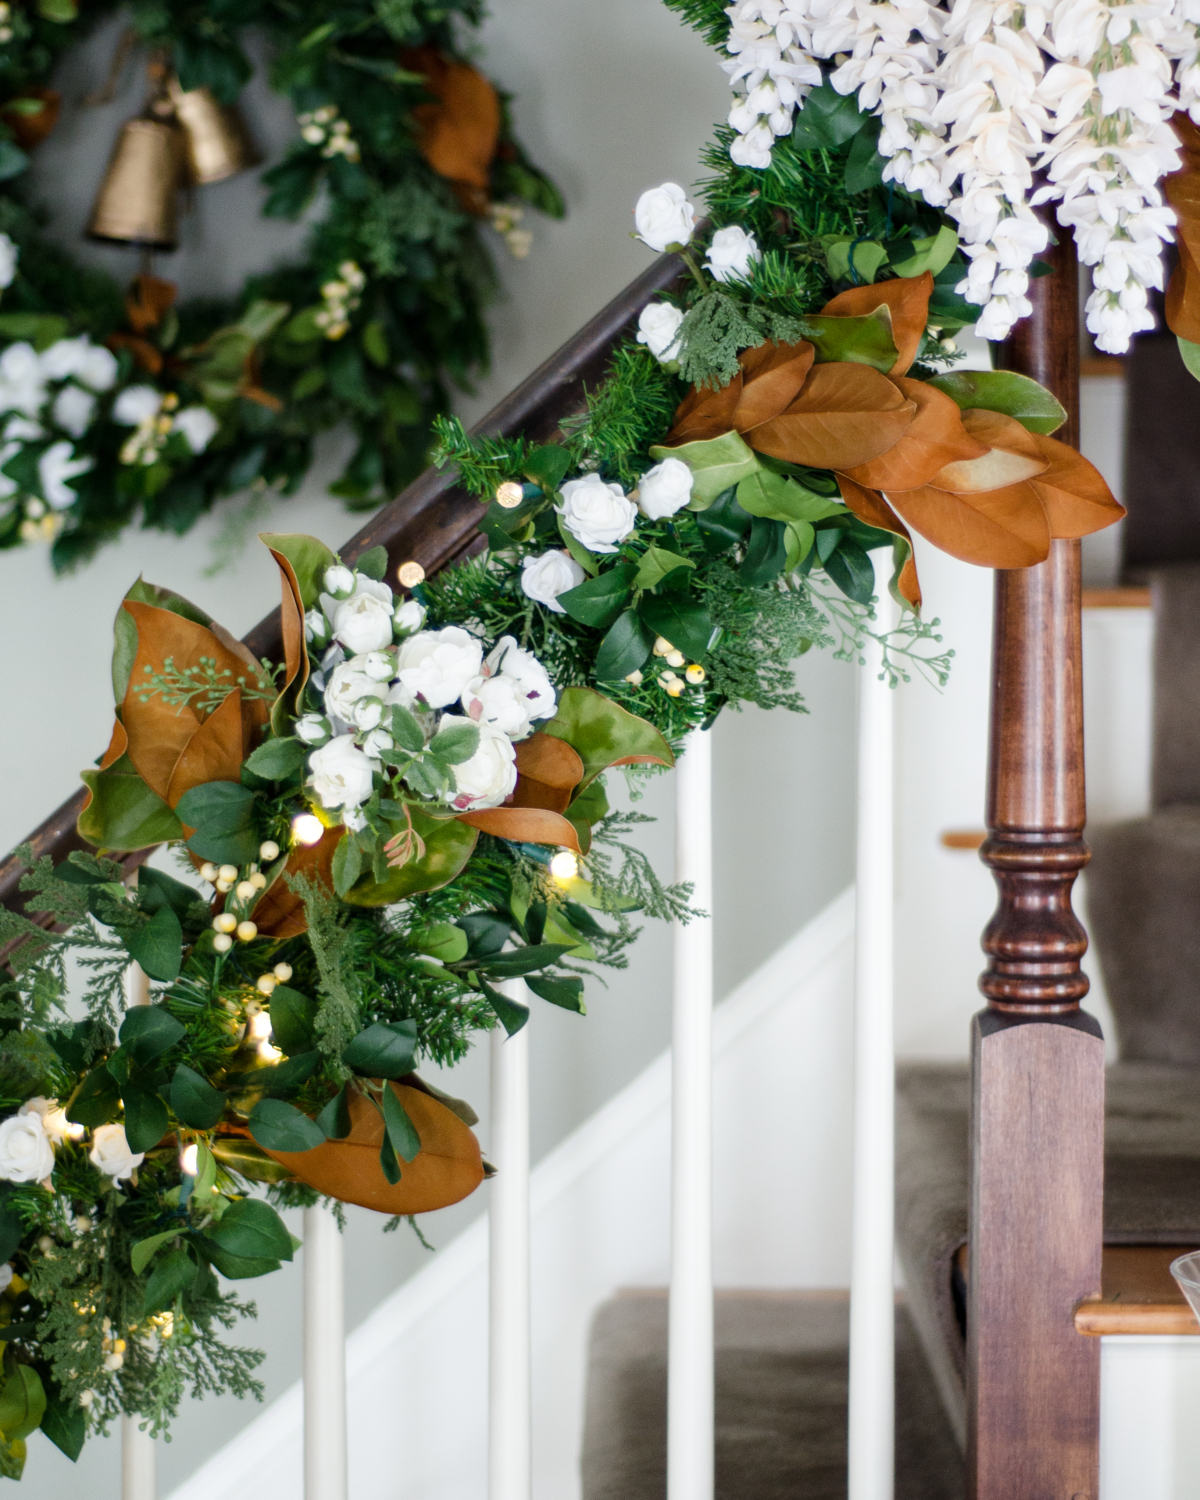 Banister garland with magnolia and white flowers